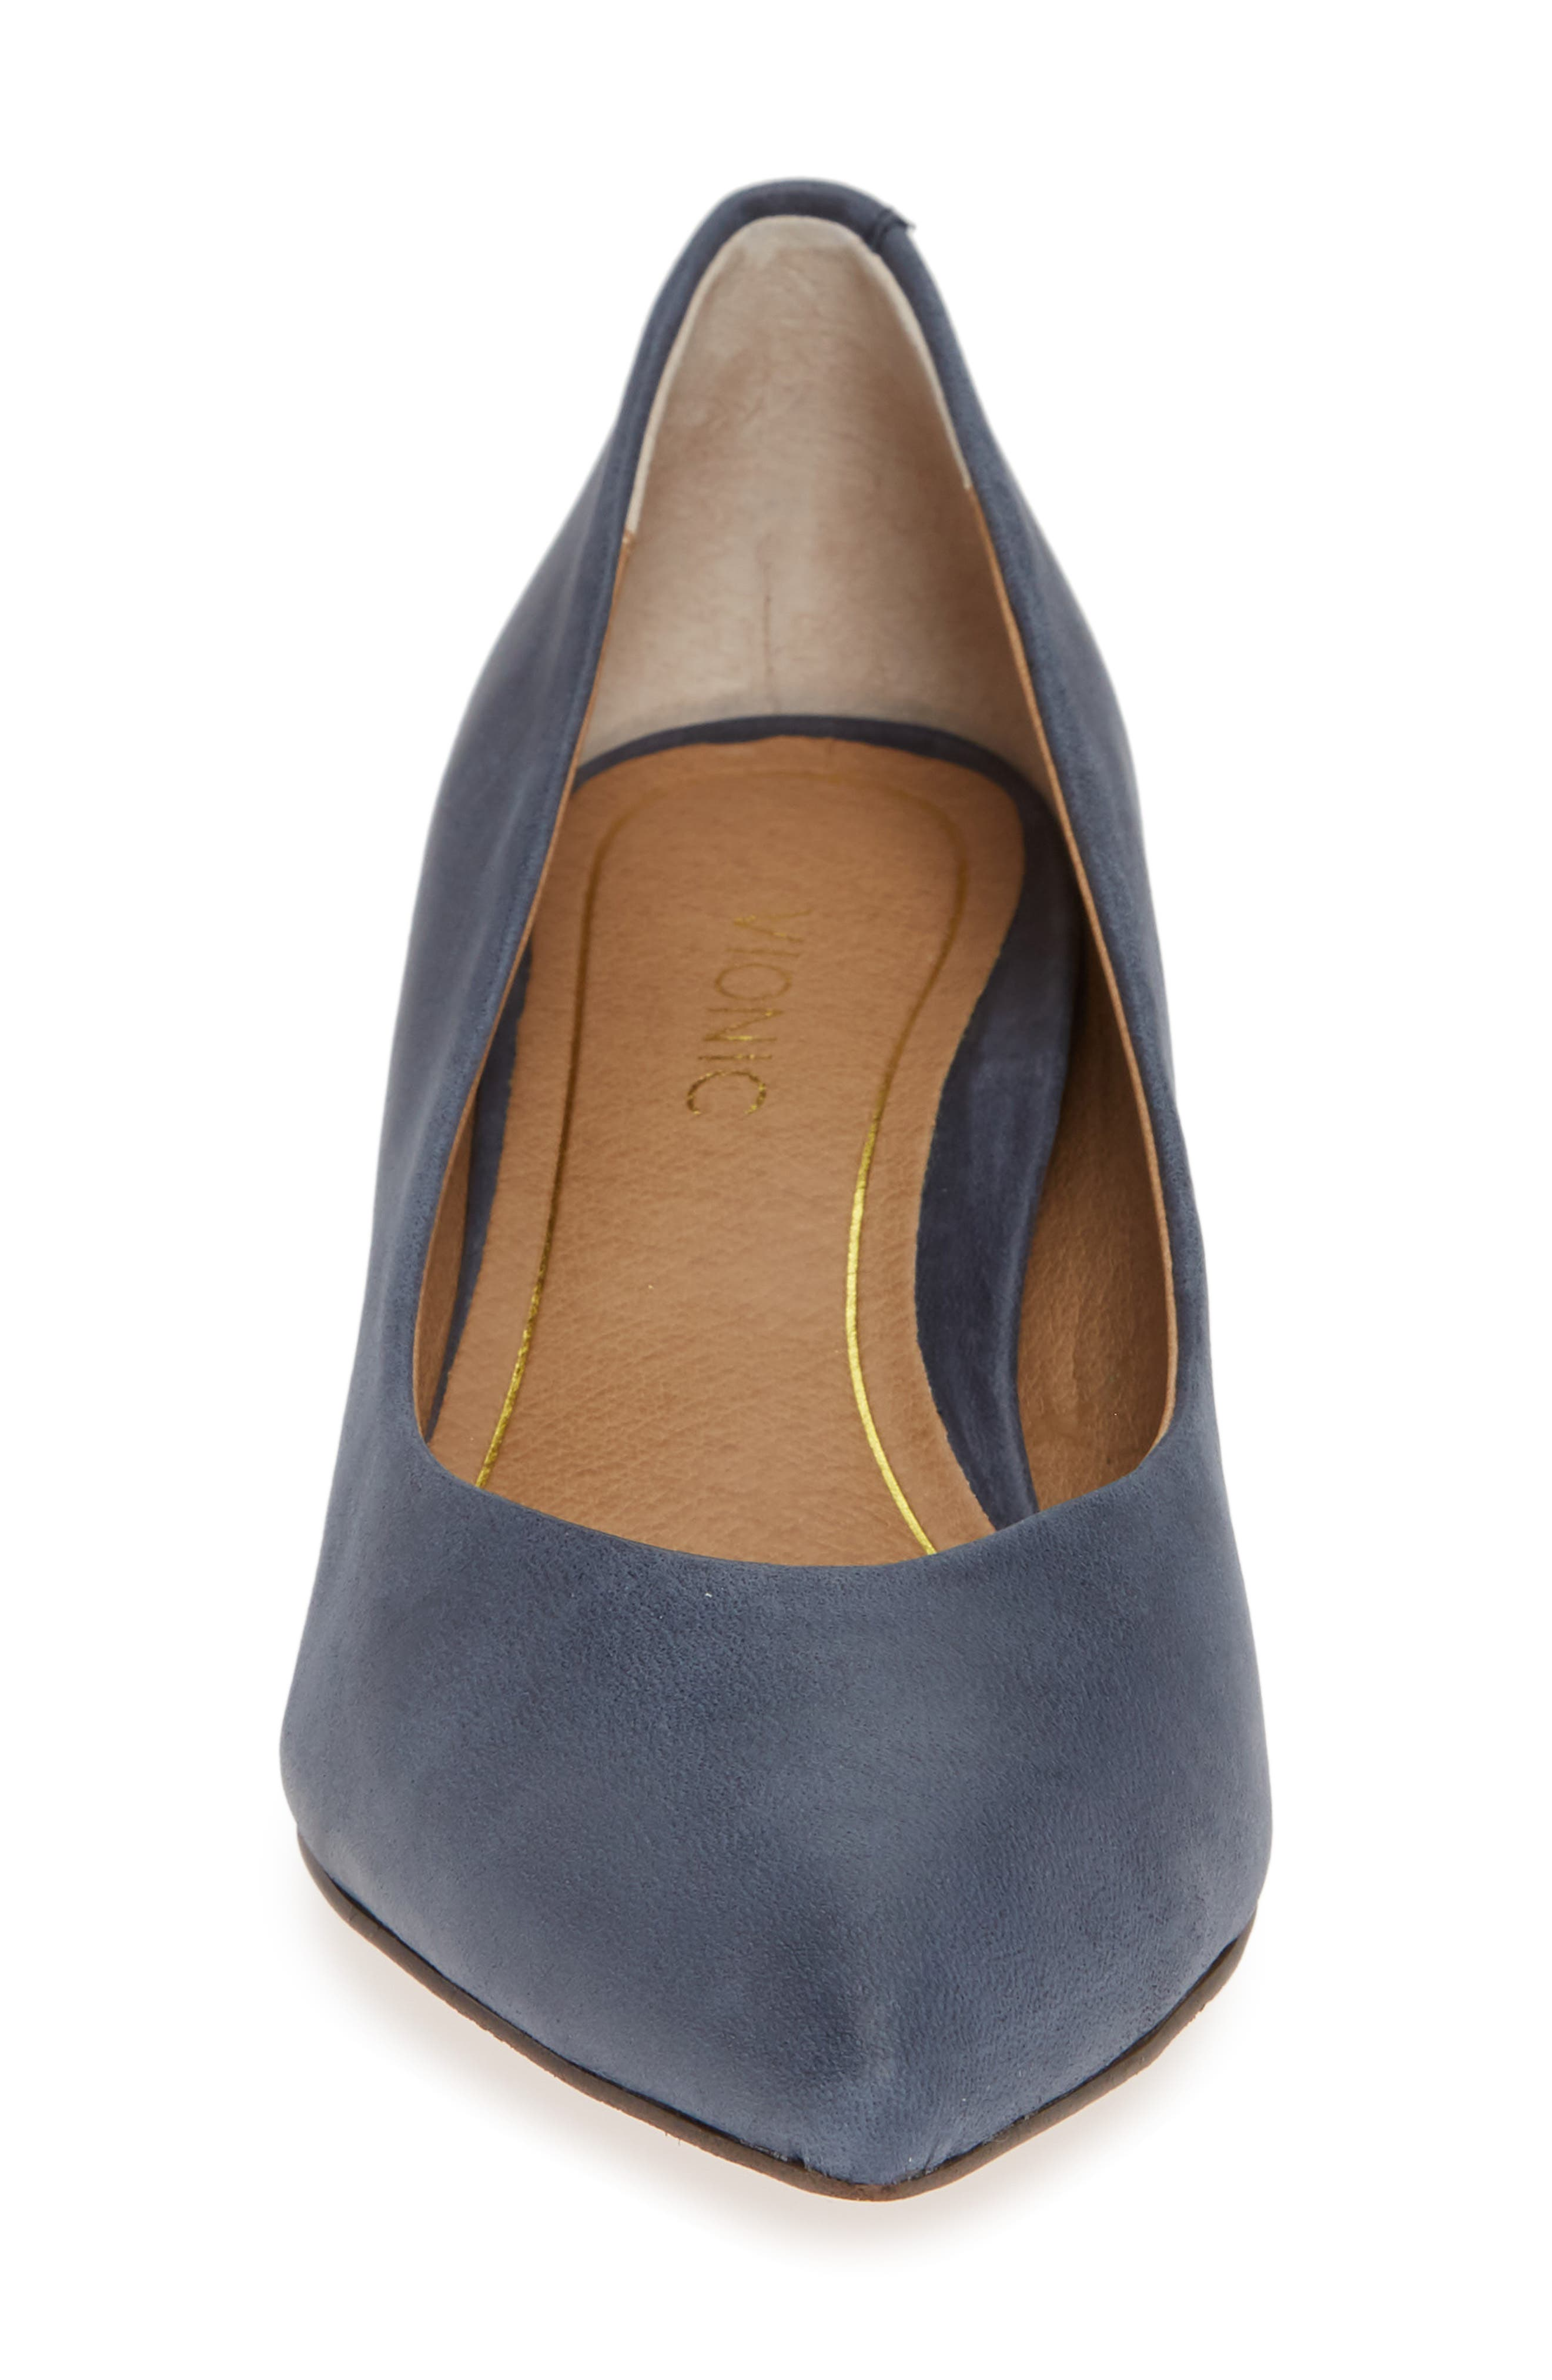 VIONIC, Josie Kitten Heel Pump, Alternate thumbnail 4, color, NAVY LEATHER